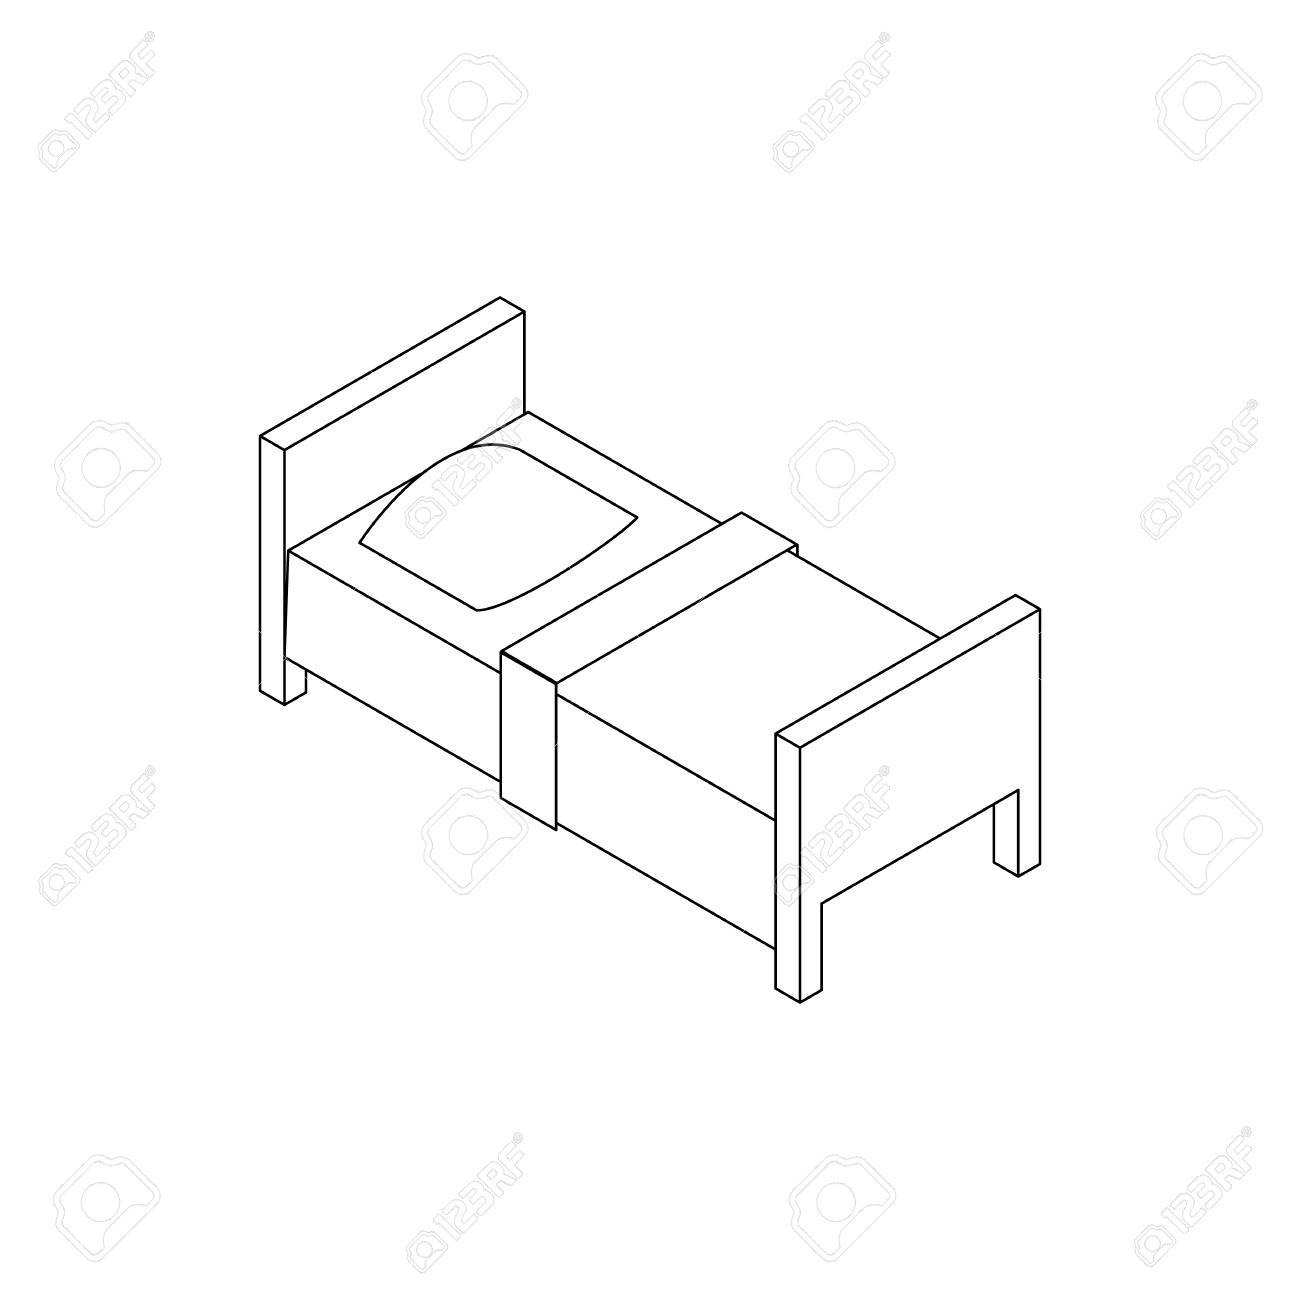 single bed icon in isometric 3d style isolated on white background stock vector